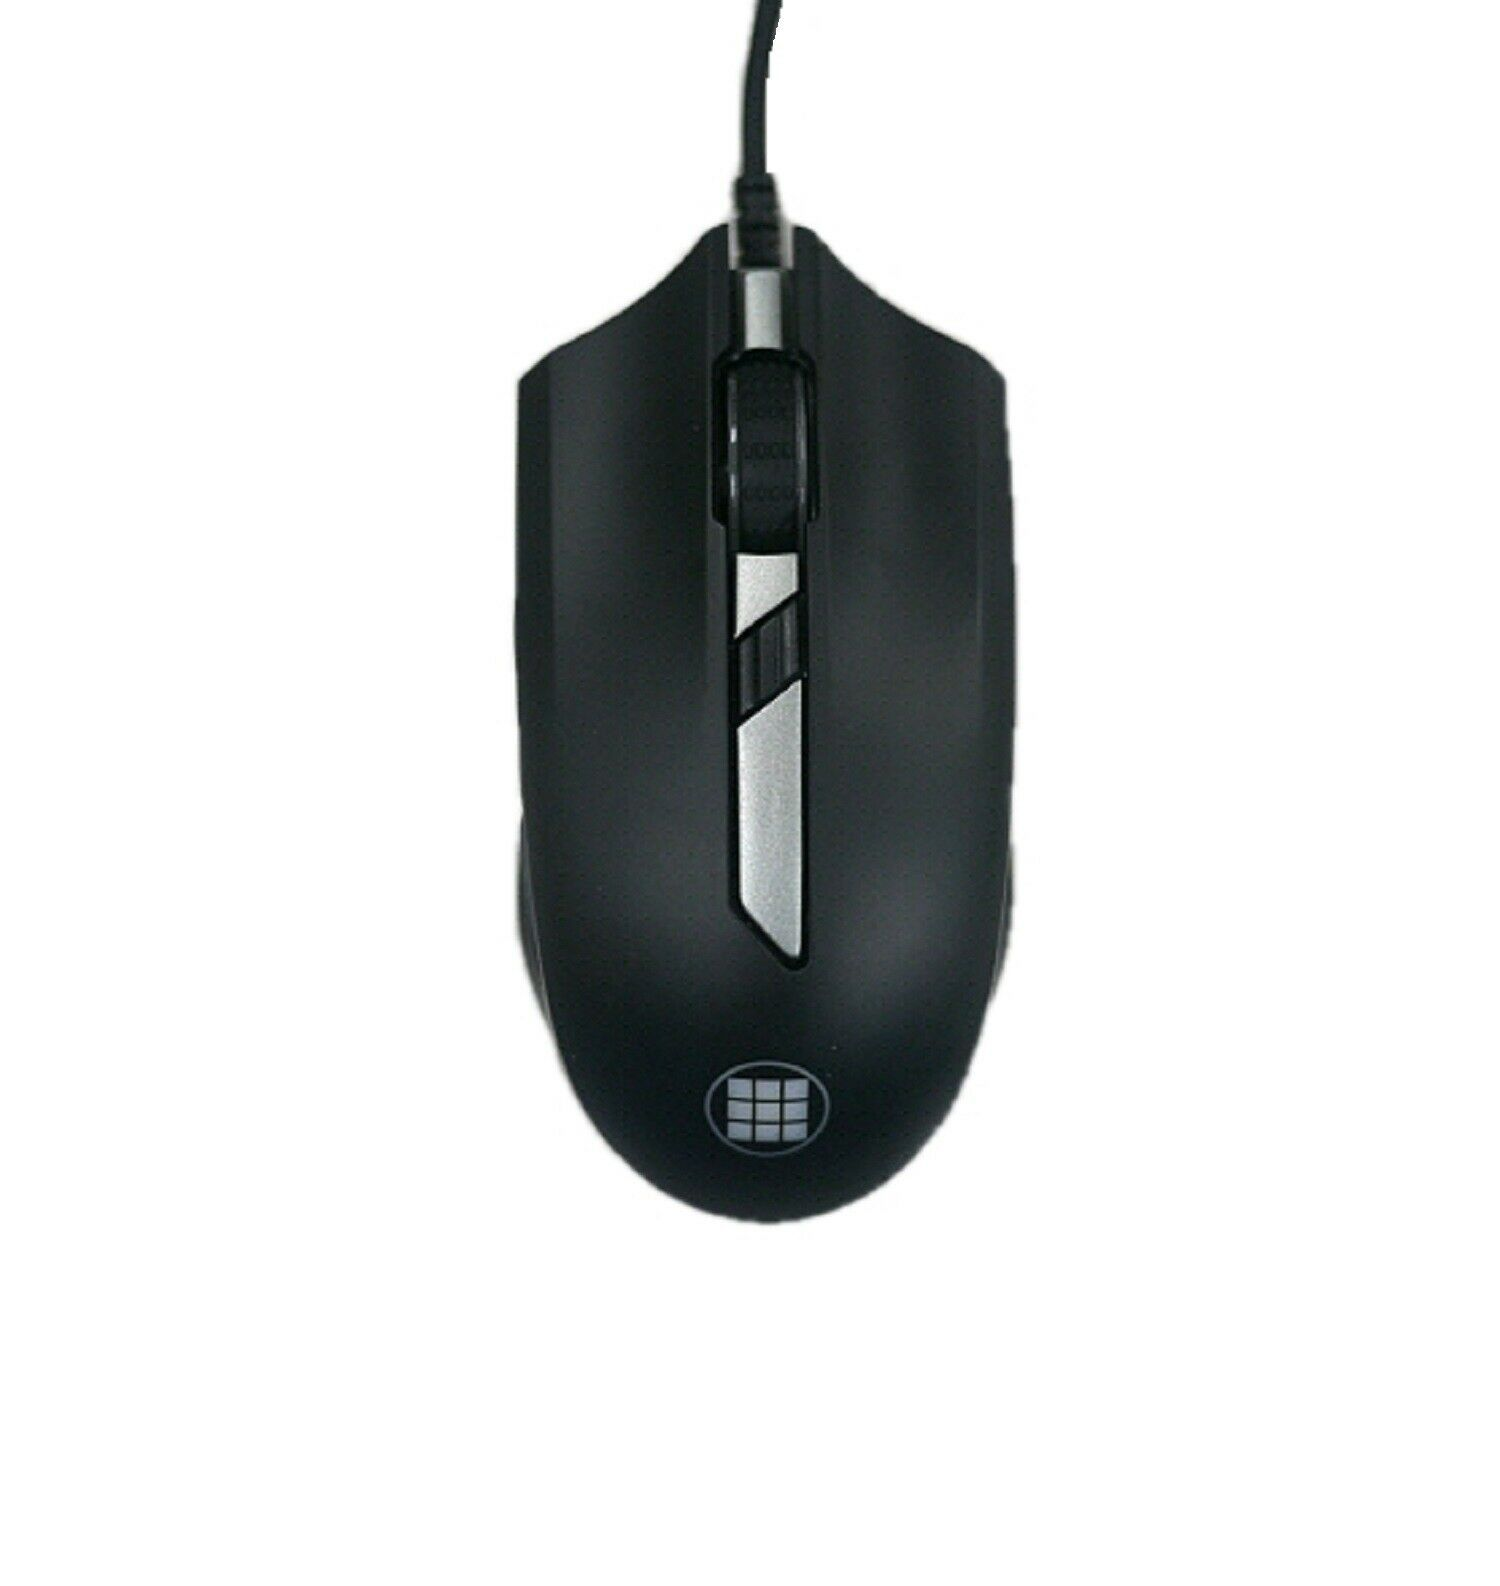 Micronics G40 USB Wired Gaming Mouse RGB Effect 12000DPI